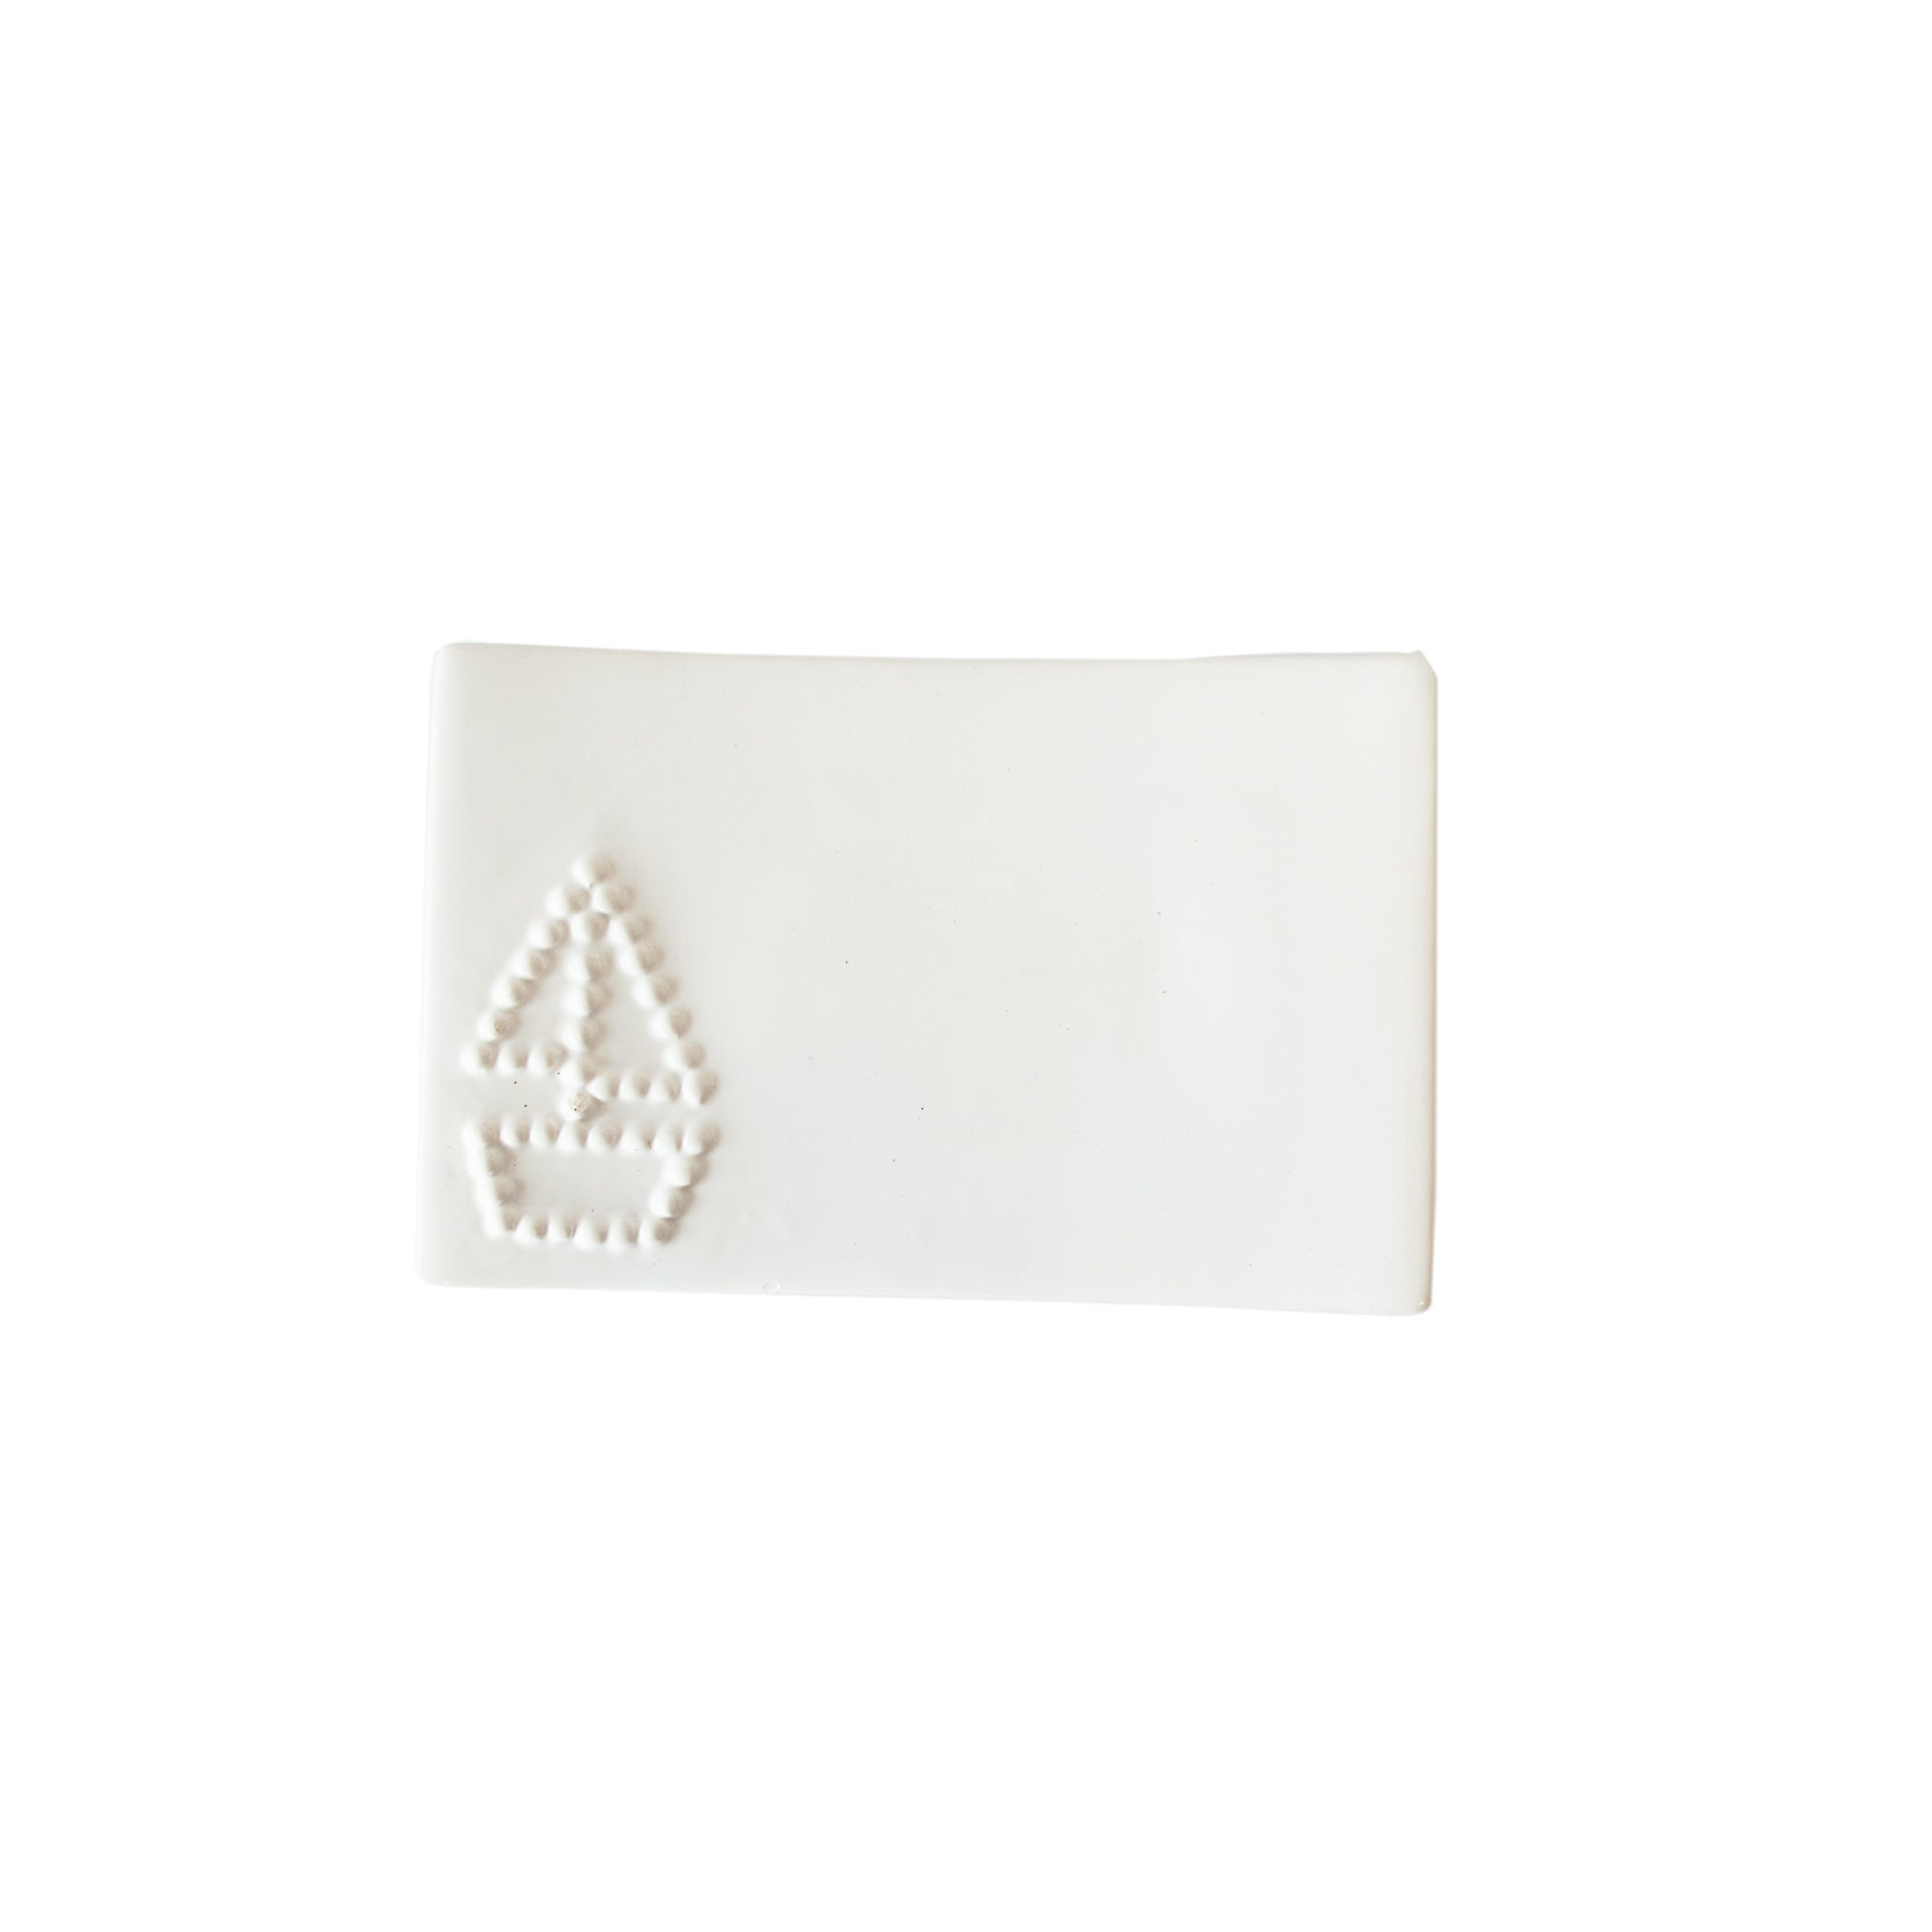 Seaside Embossed Collection Boat Soap Dish